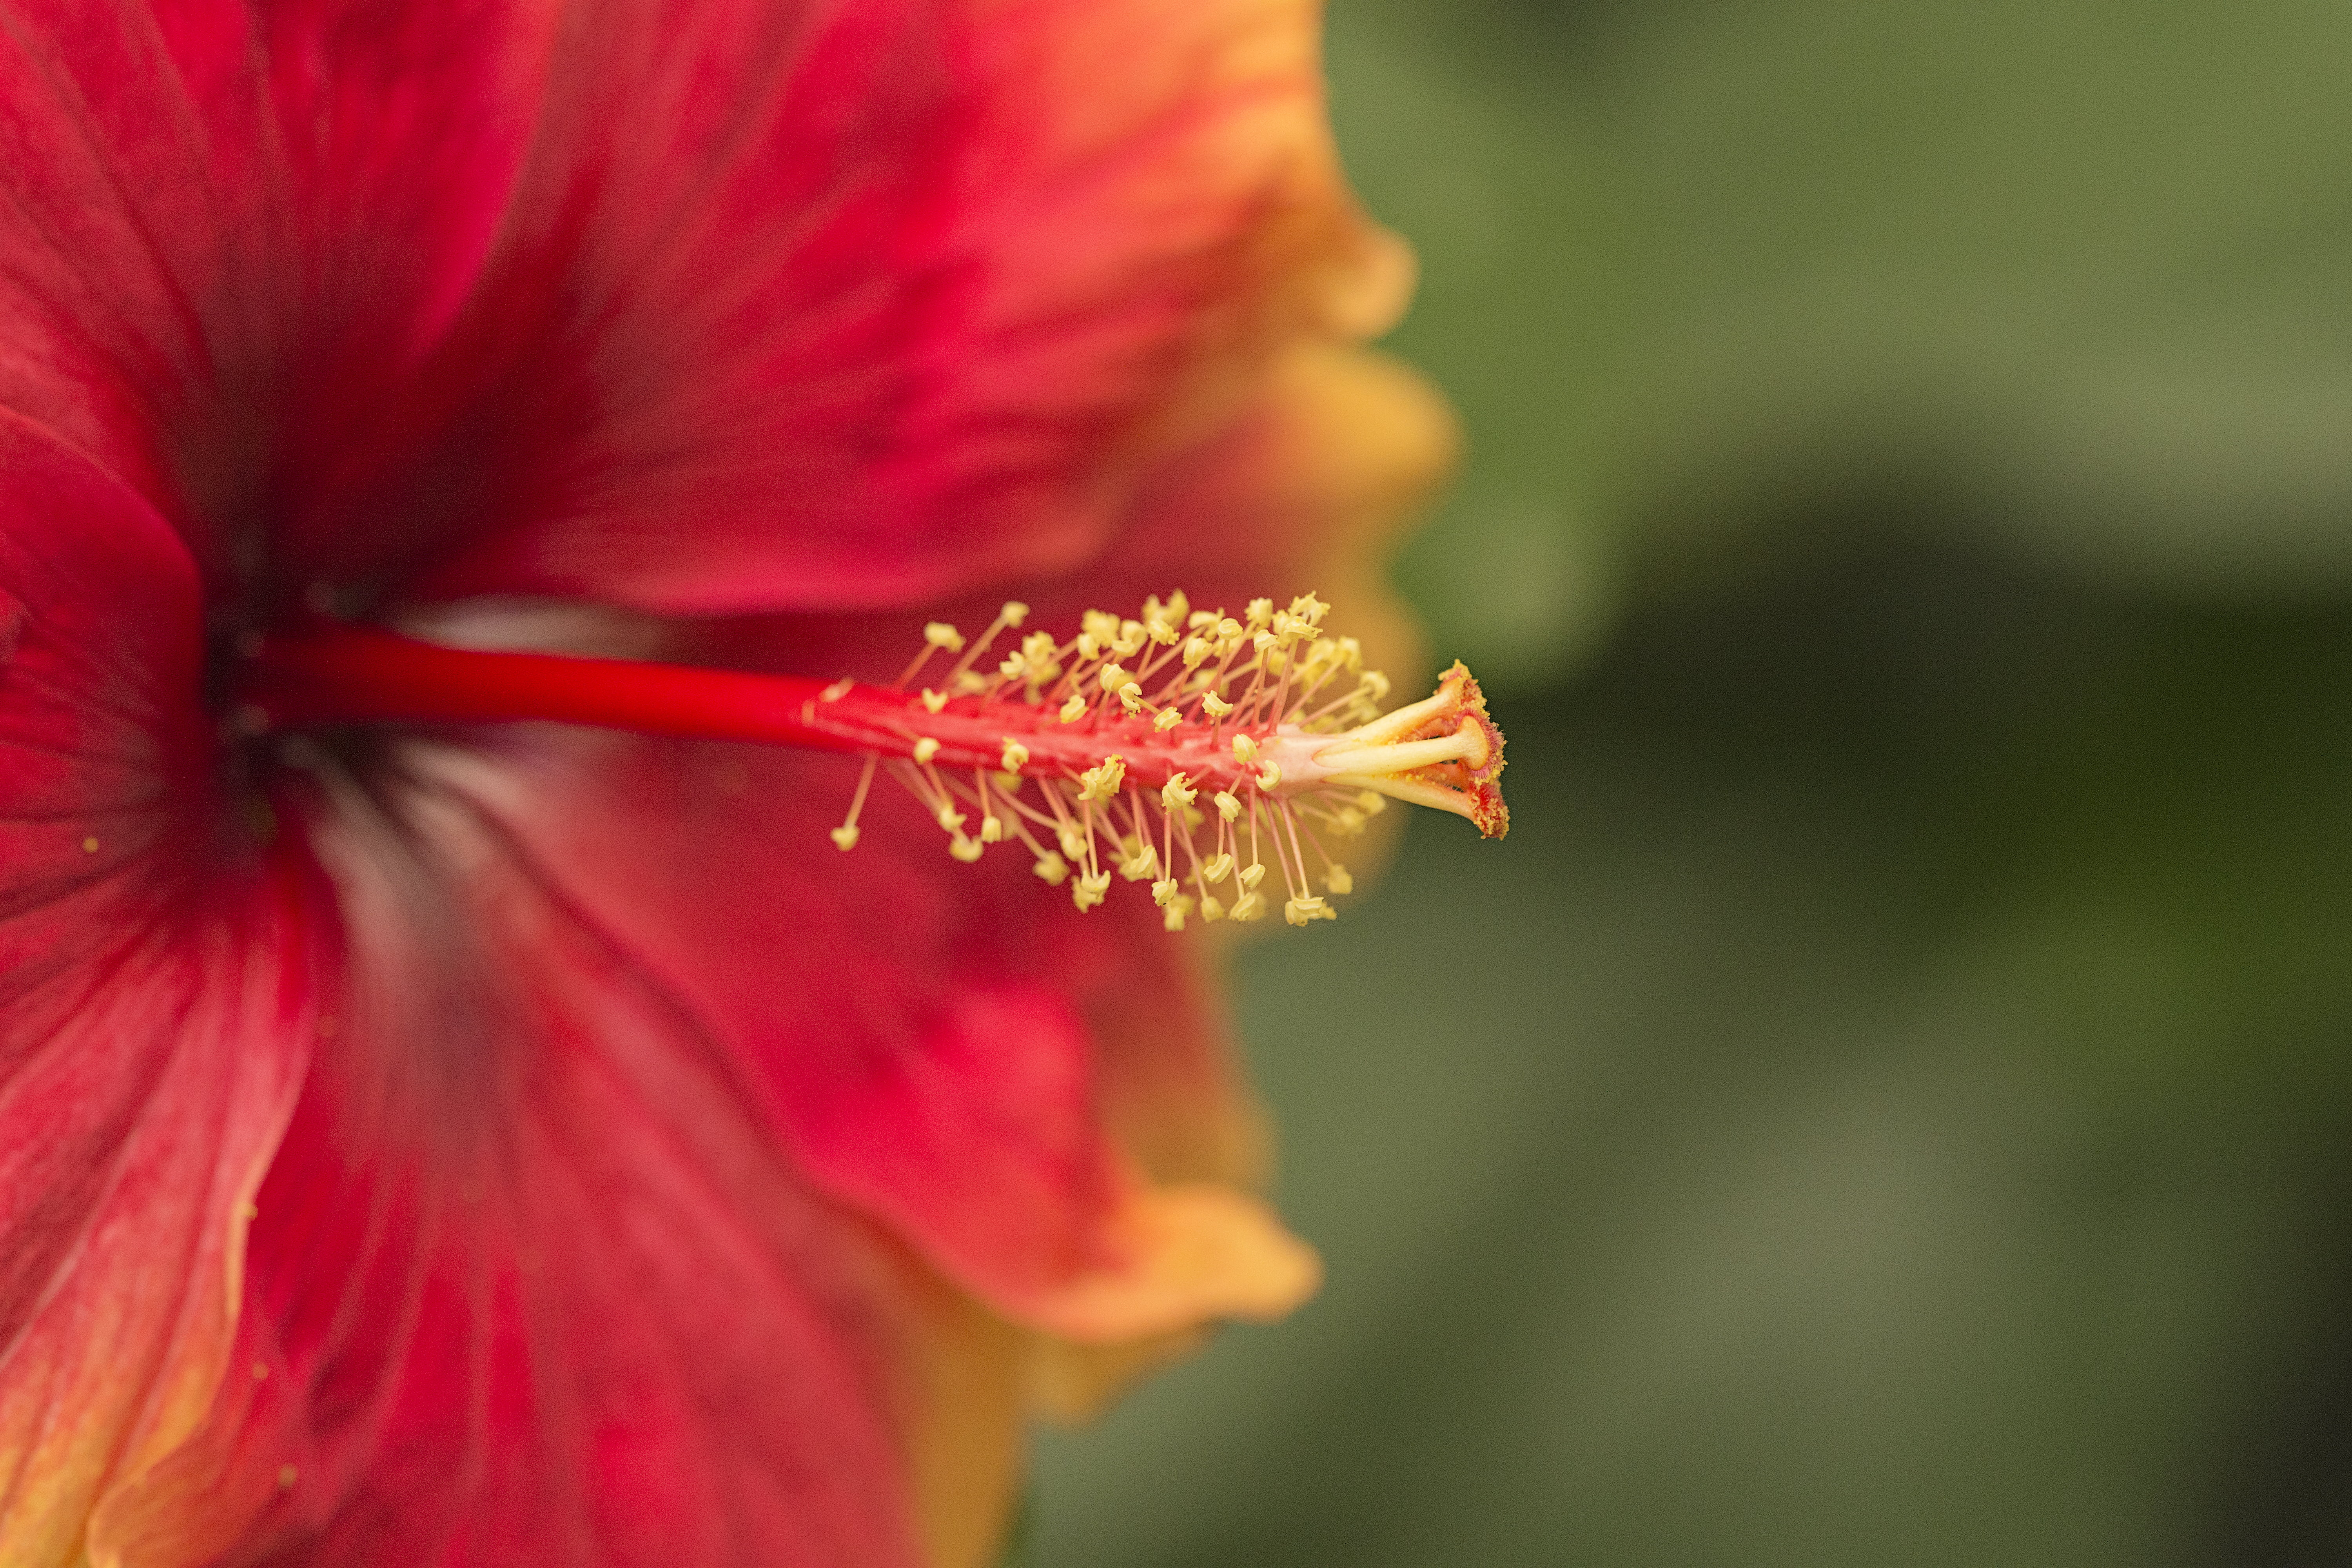 Focus photography of red and yellow Hibiscus HD wallpaper 6000x4000